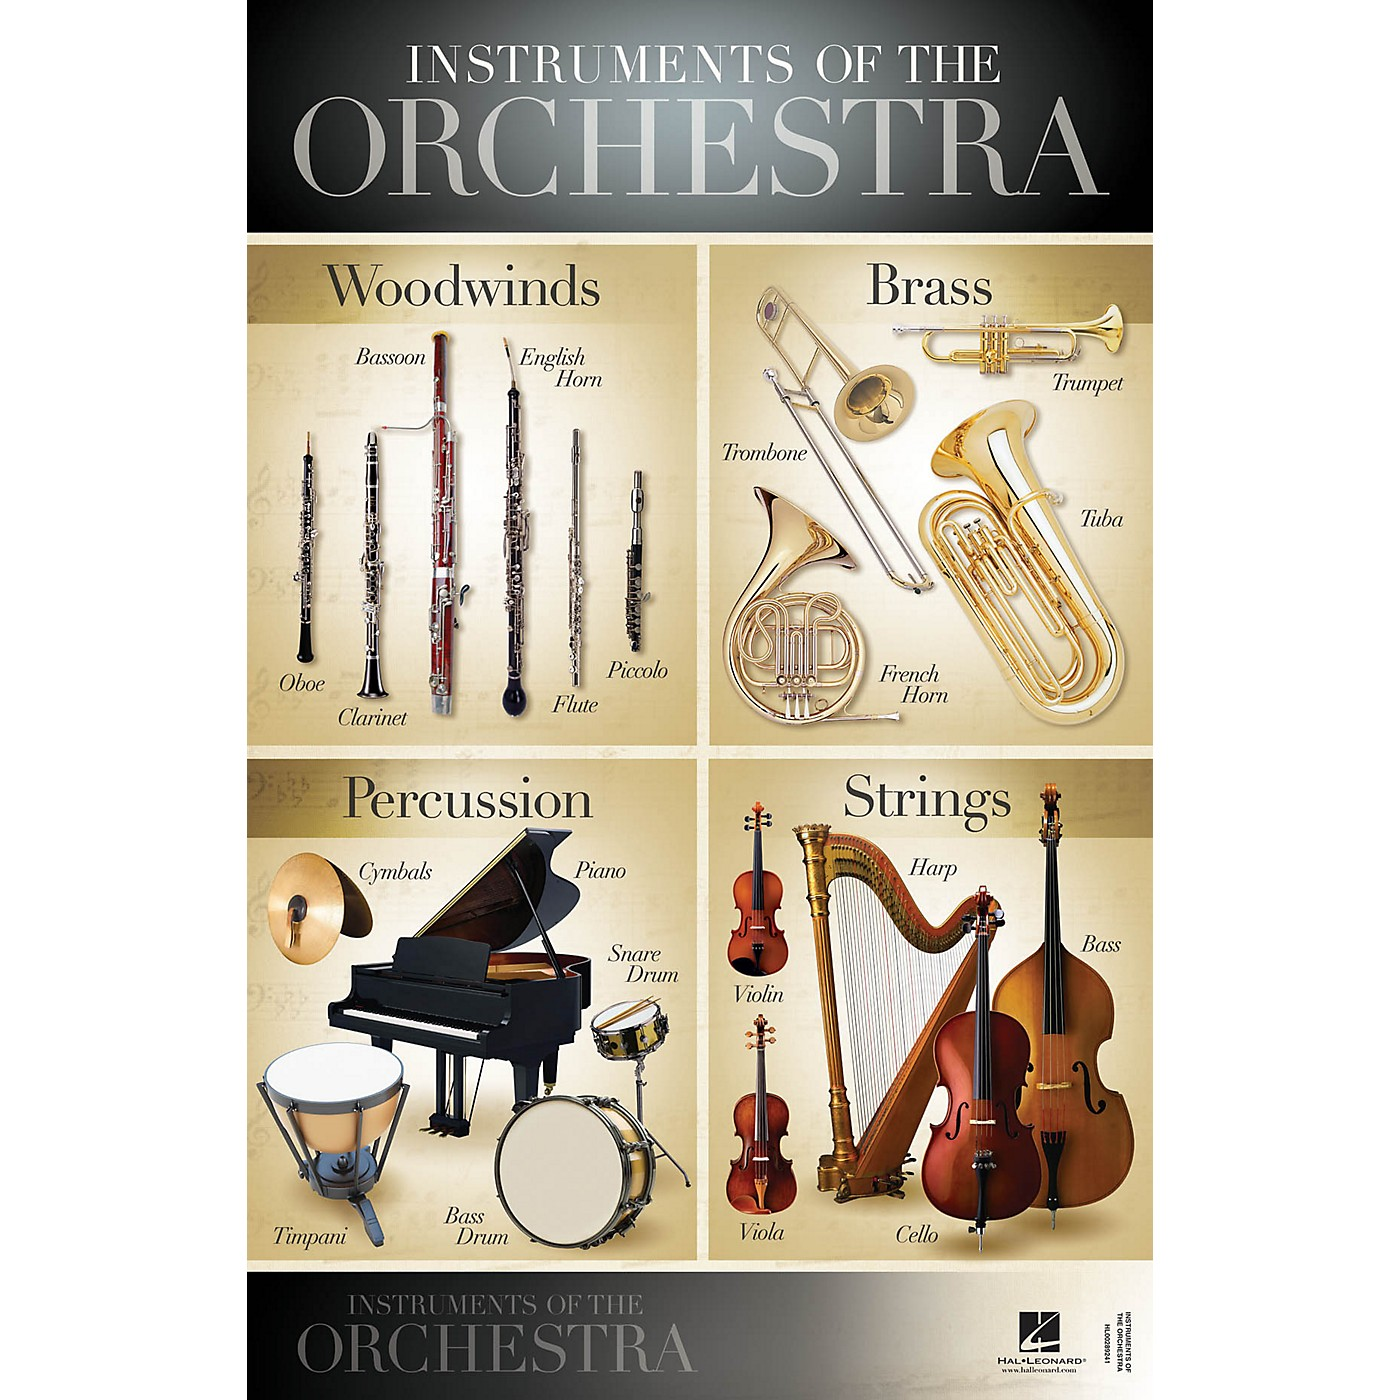 Hal Leonard Instruments of the Orchestra Wall Poster - 22 inch x 34 inch thumbnail